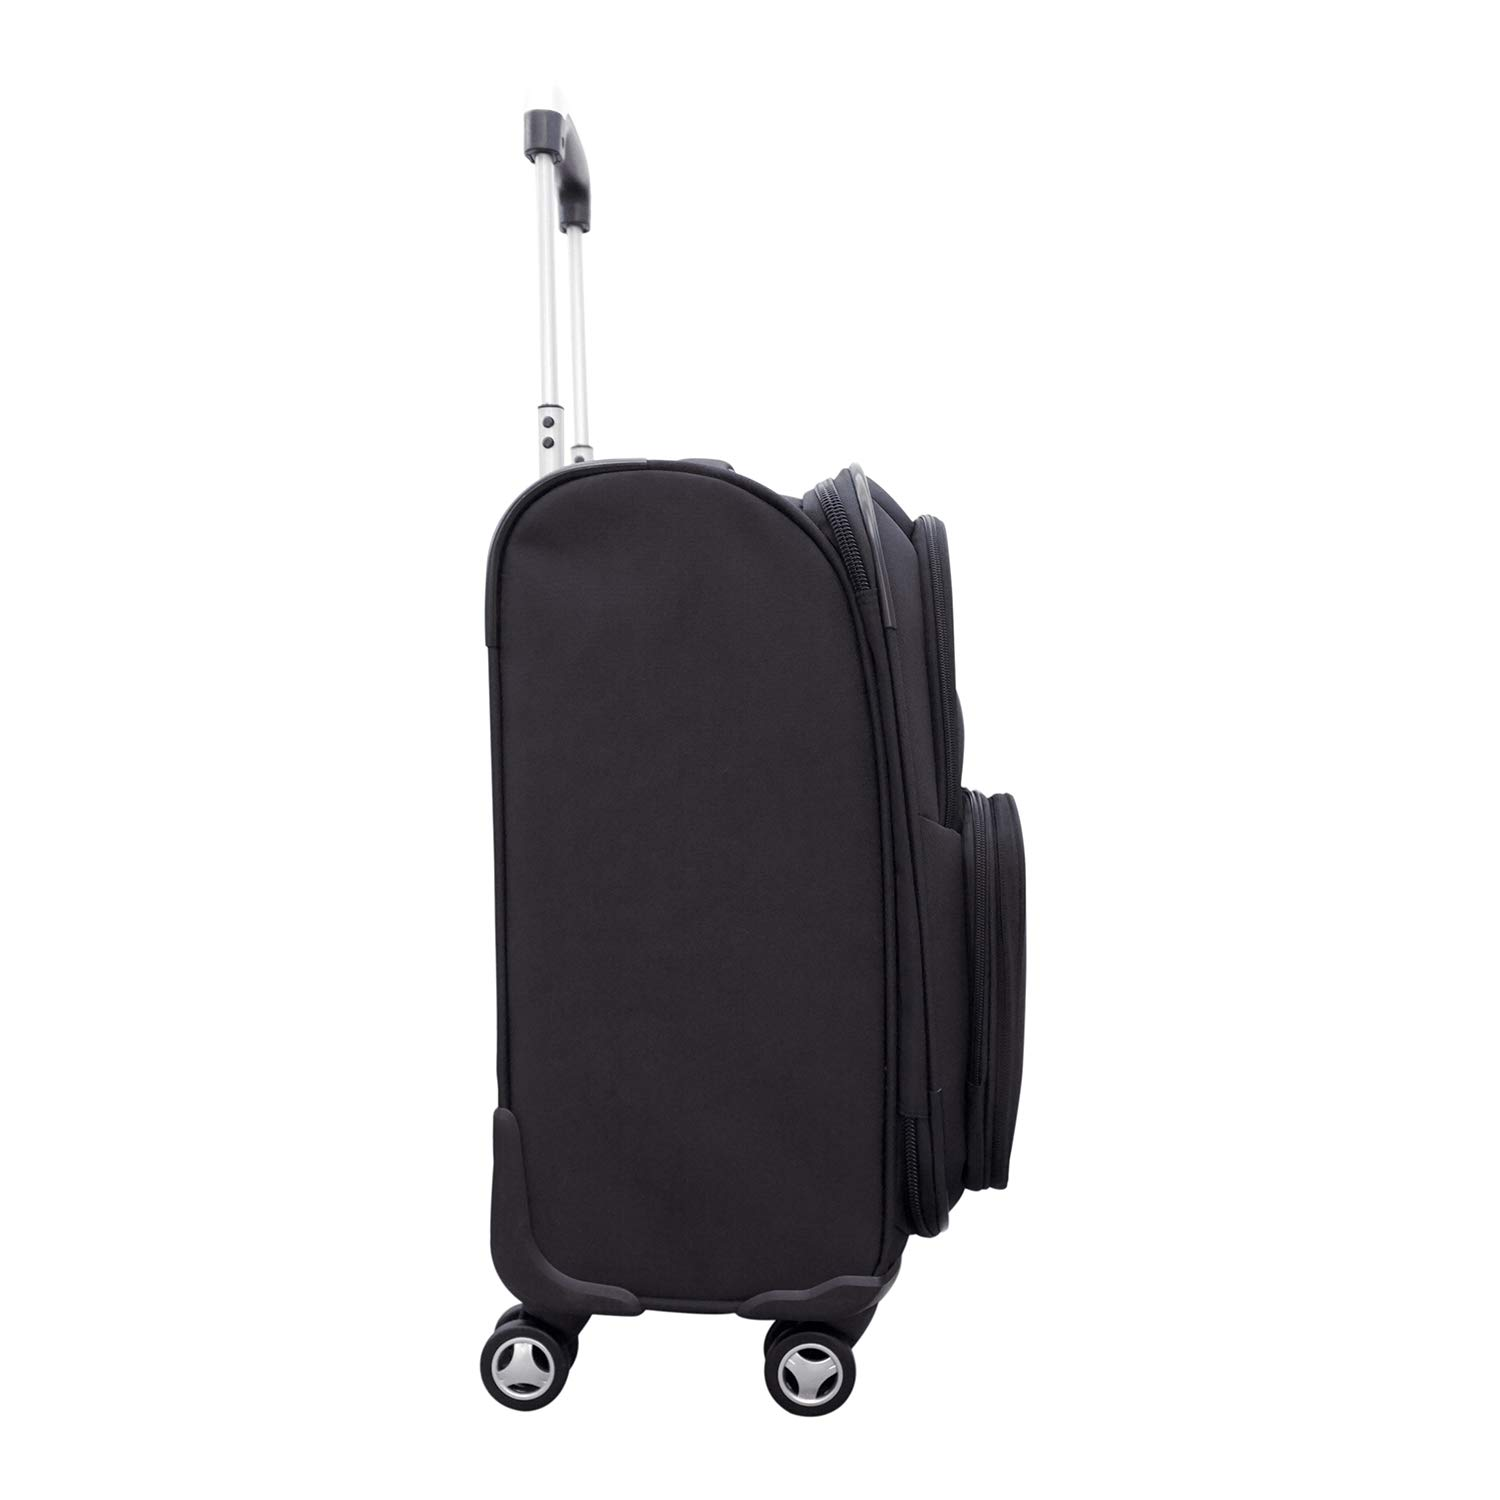 Denco NBA Charlotte Hornets Carry-On Luggage Spinner by Denco (Image #3)